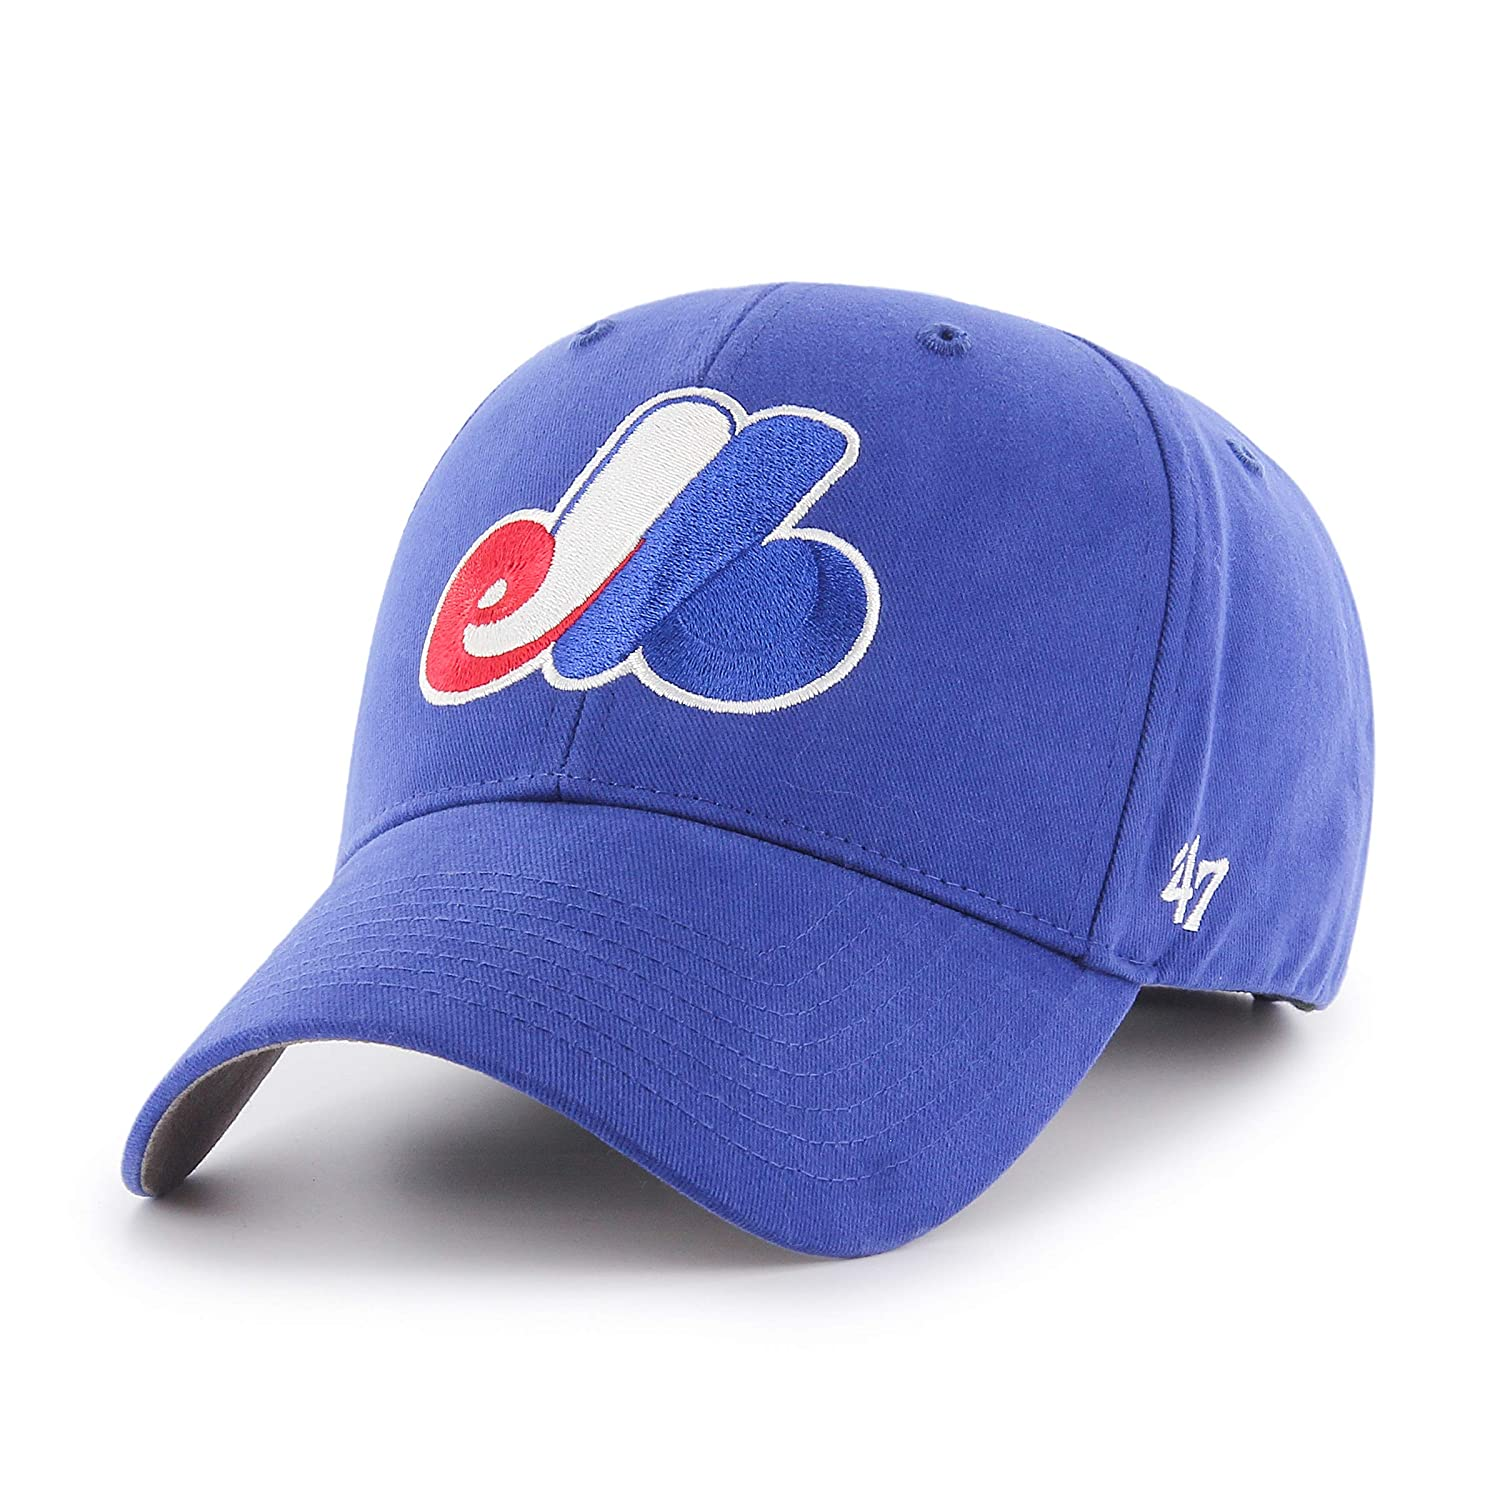 One Size Infant Montreal Expos Infant Cooperstown Primary MVP Hat